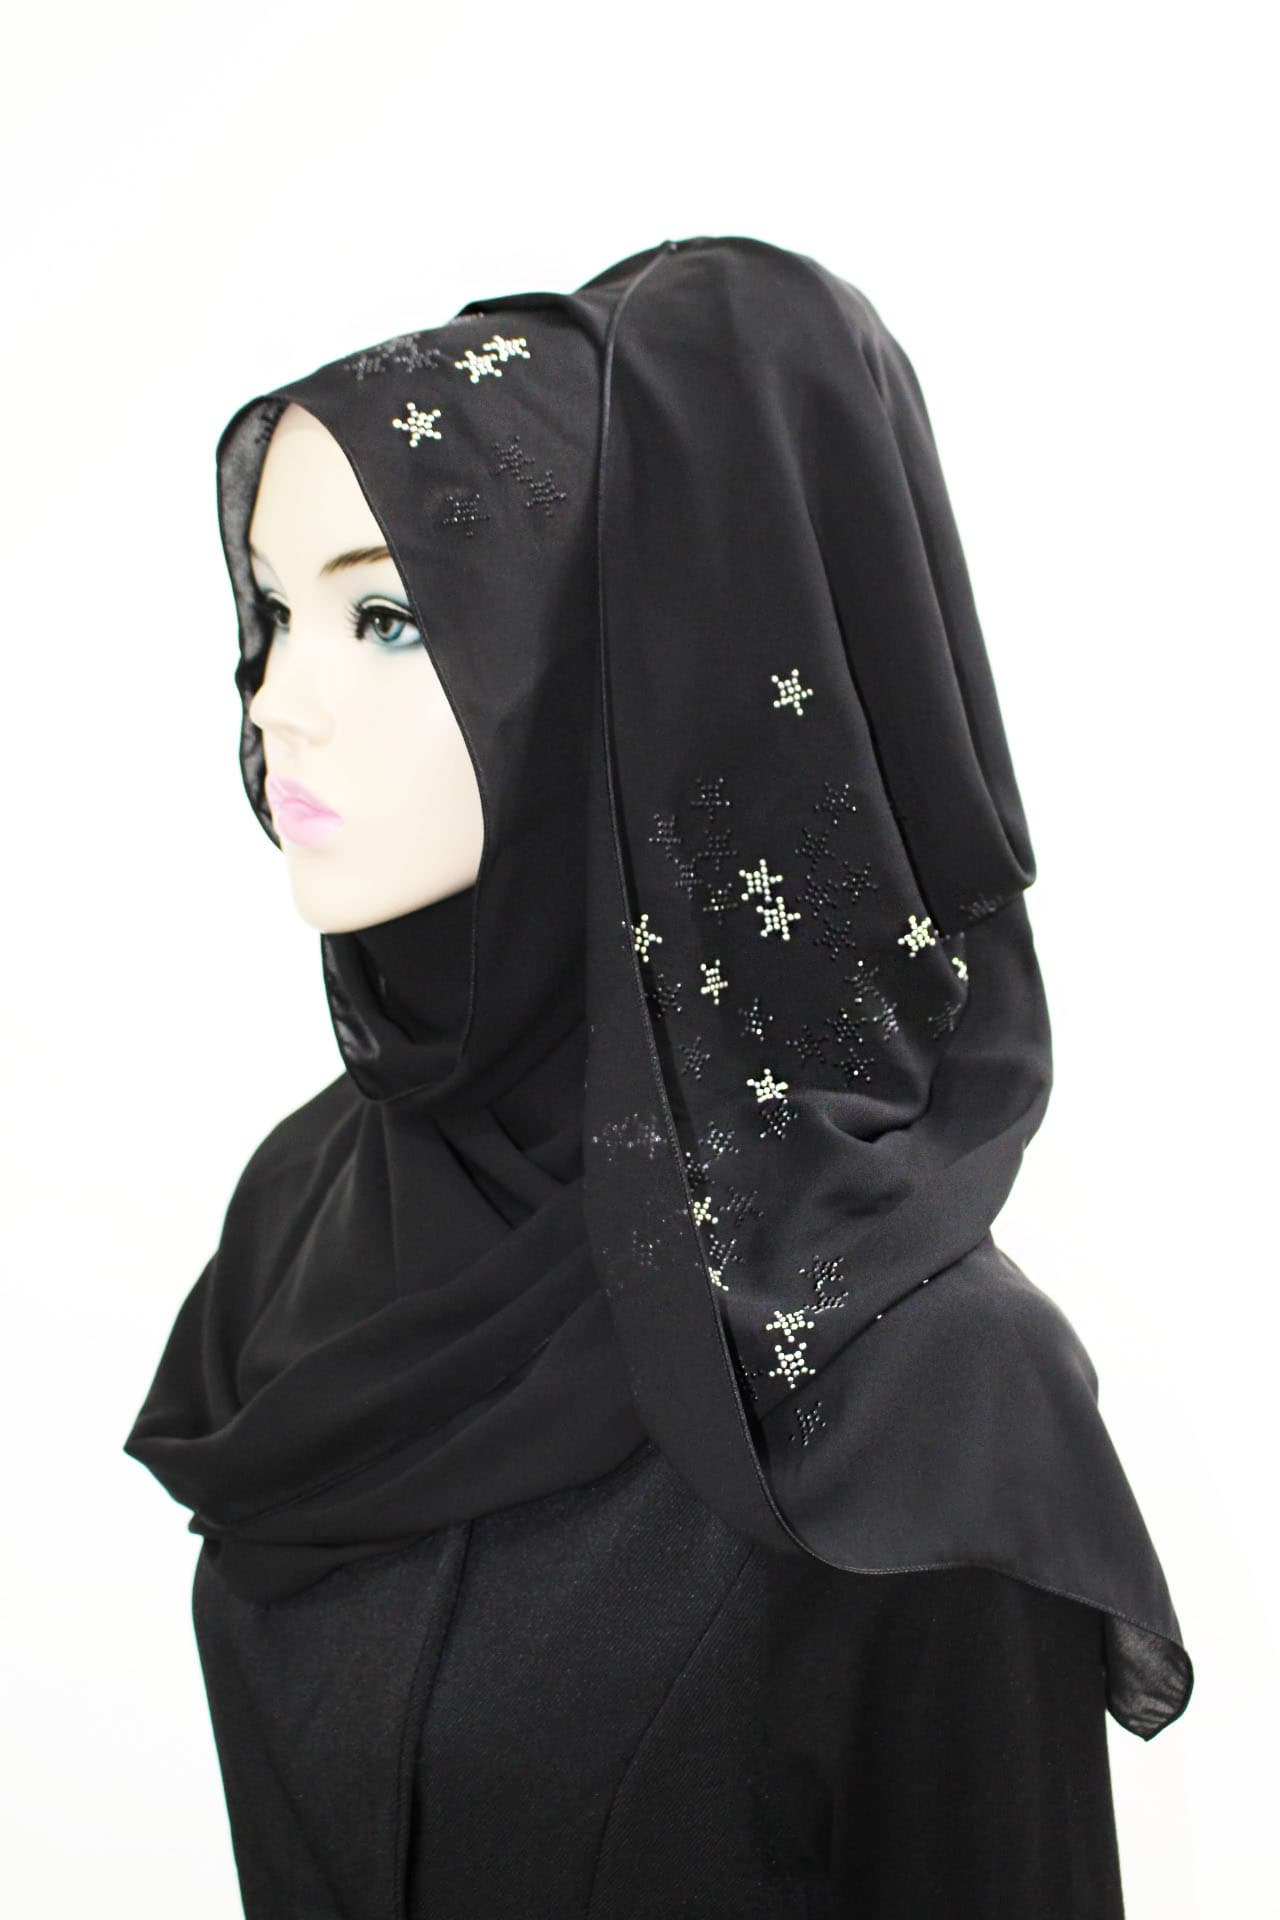 Th150_The twelve__Stylish Design Hijab_Niquab